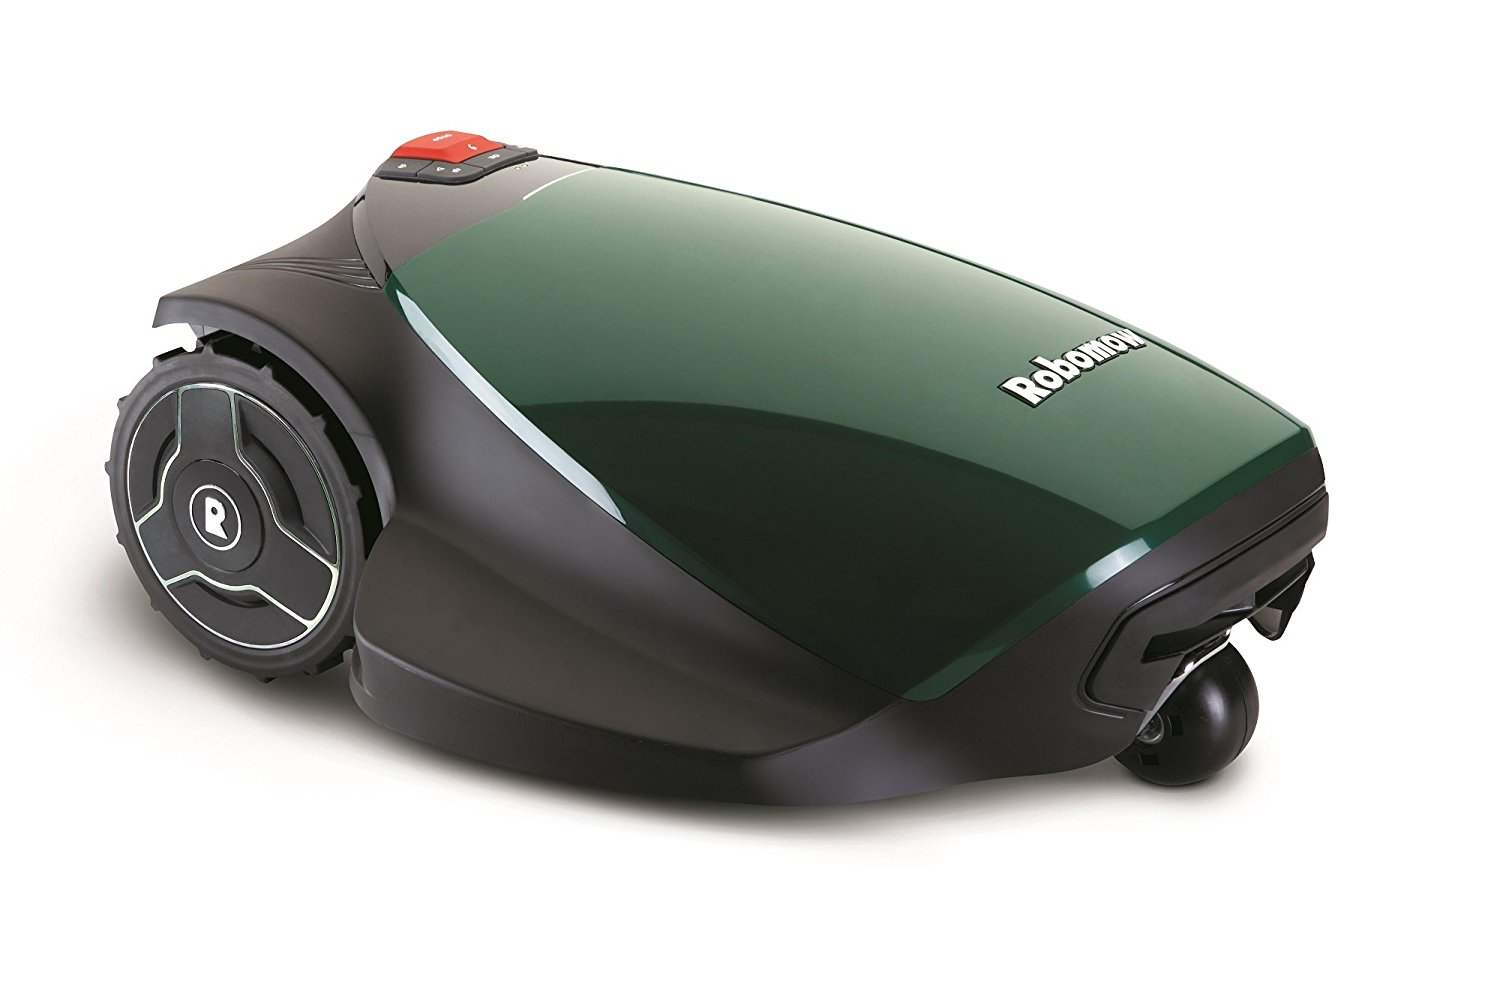 The Official 101 Buying Guide for a Robotic Lawn Mower